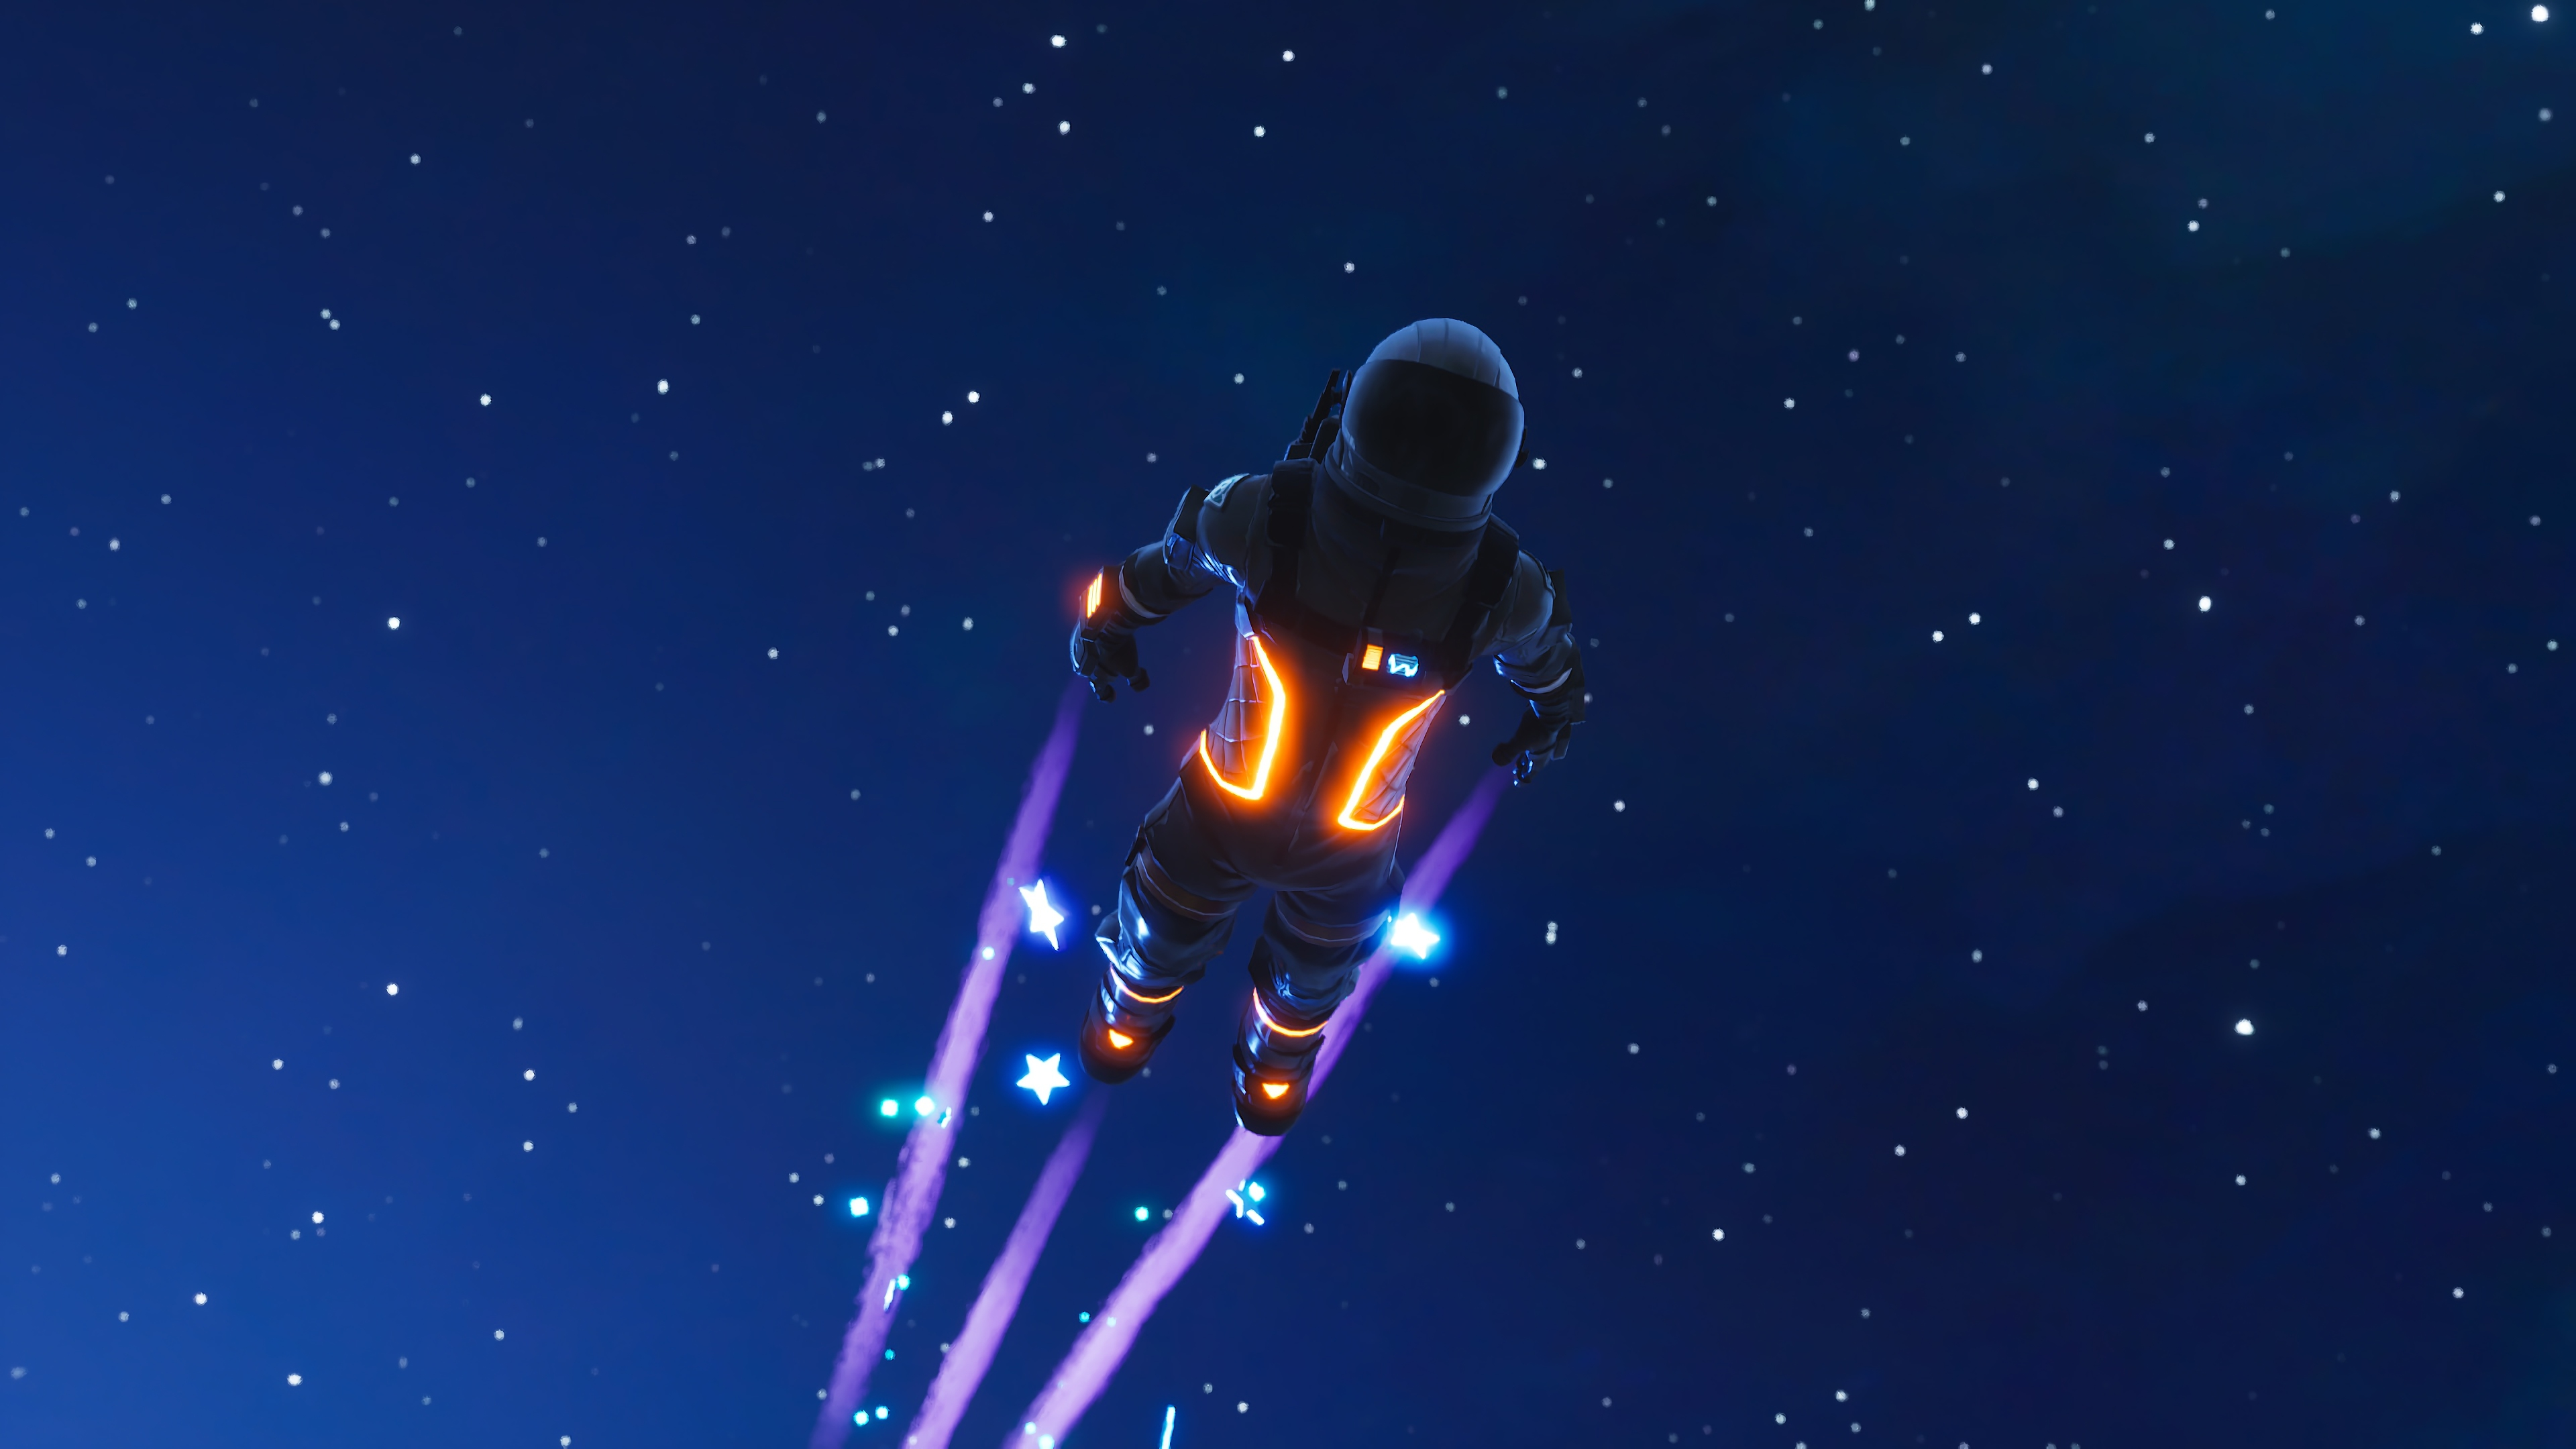 Wallpaper 4k Dark Voyager Skydive Fortnite Battle Royale 4k 2018